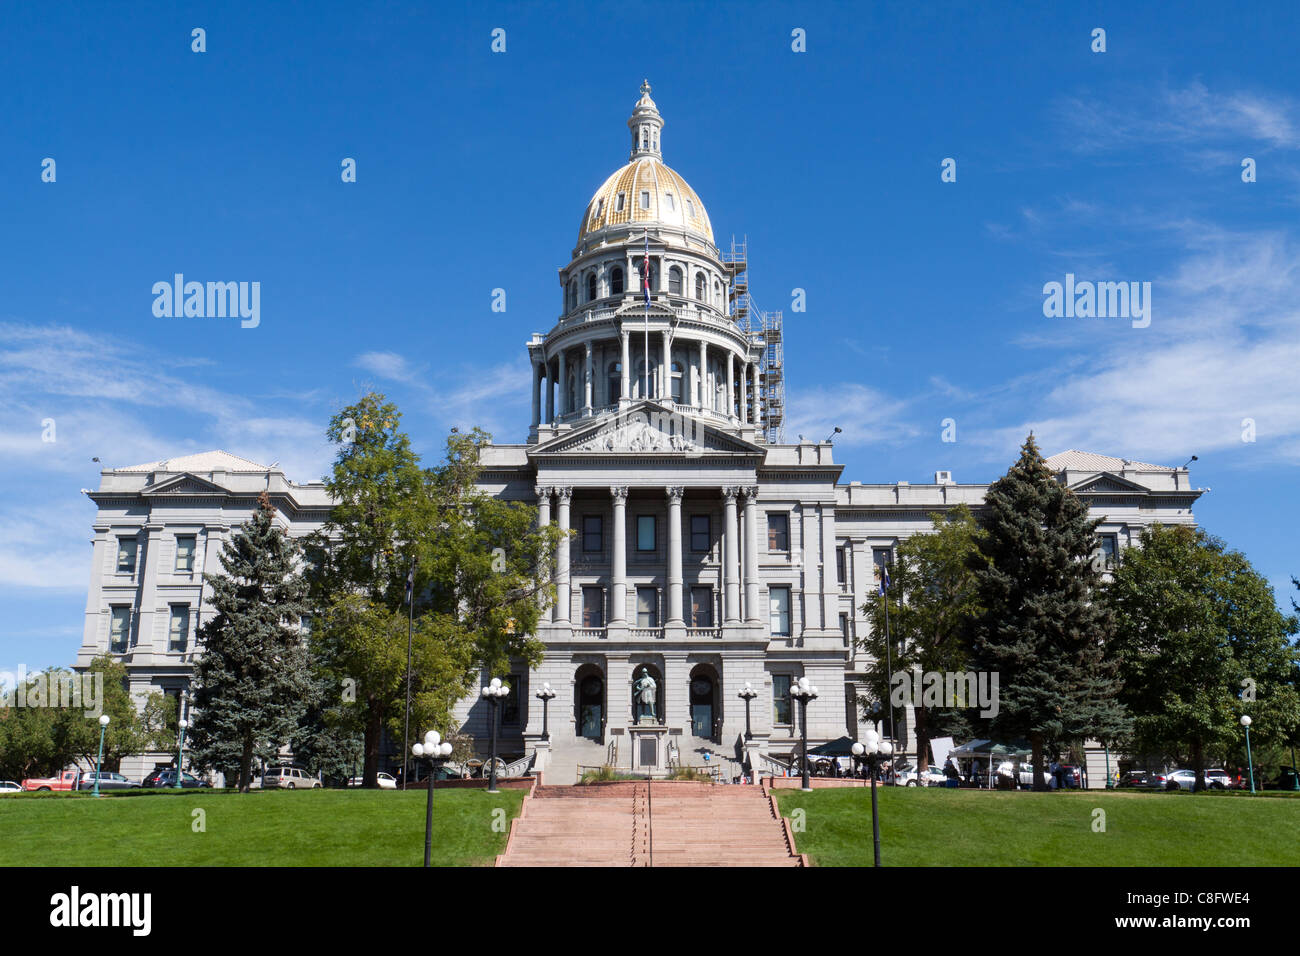 Front of Colorado capitol building or statehouse in Denver - Stock Image